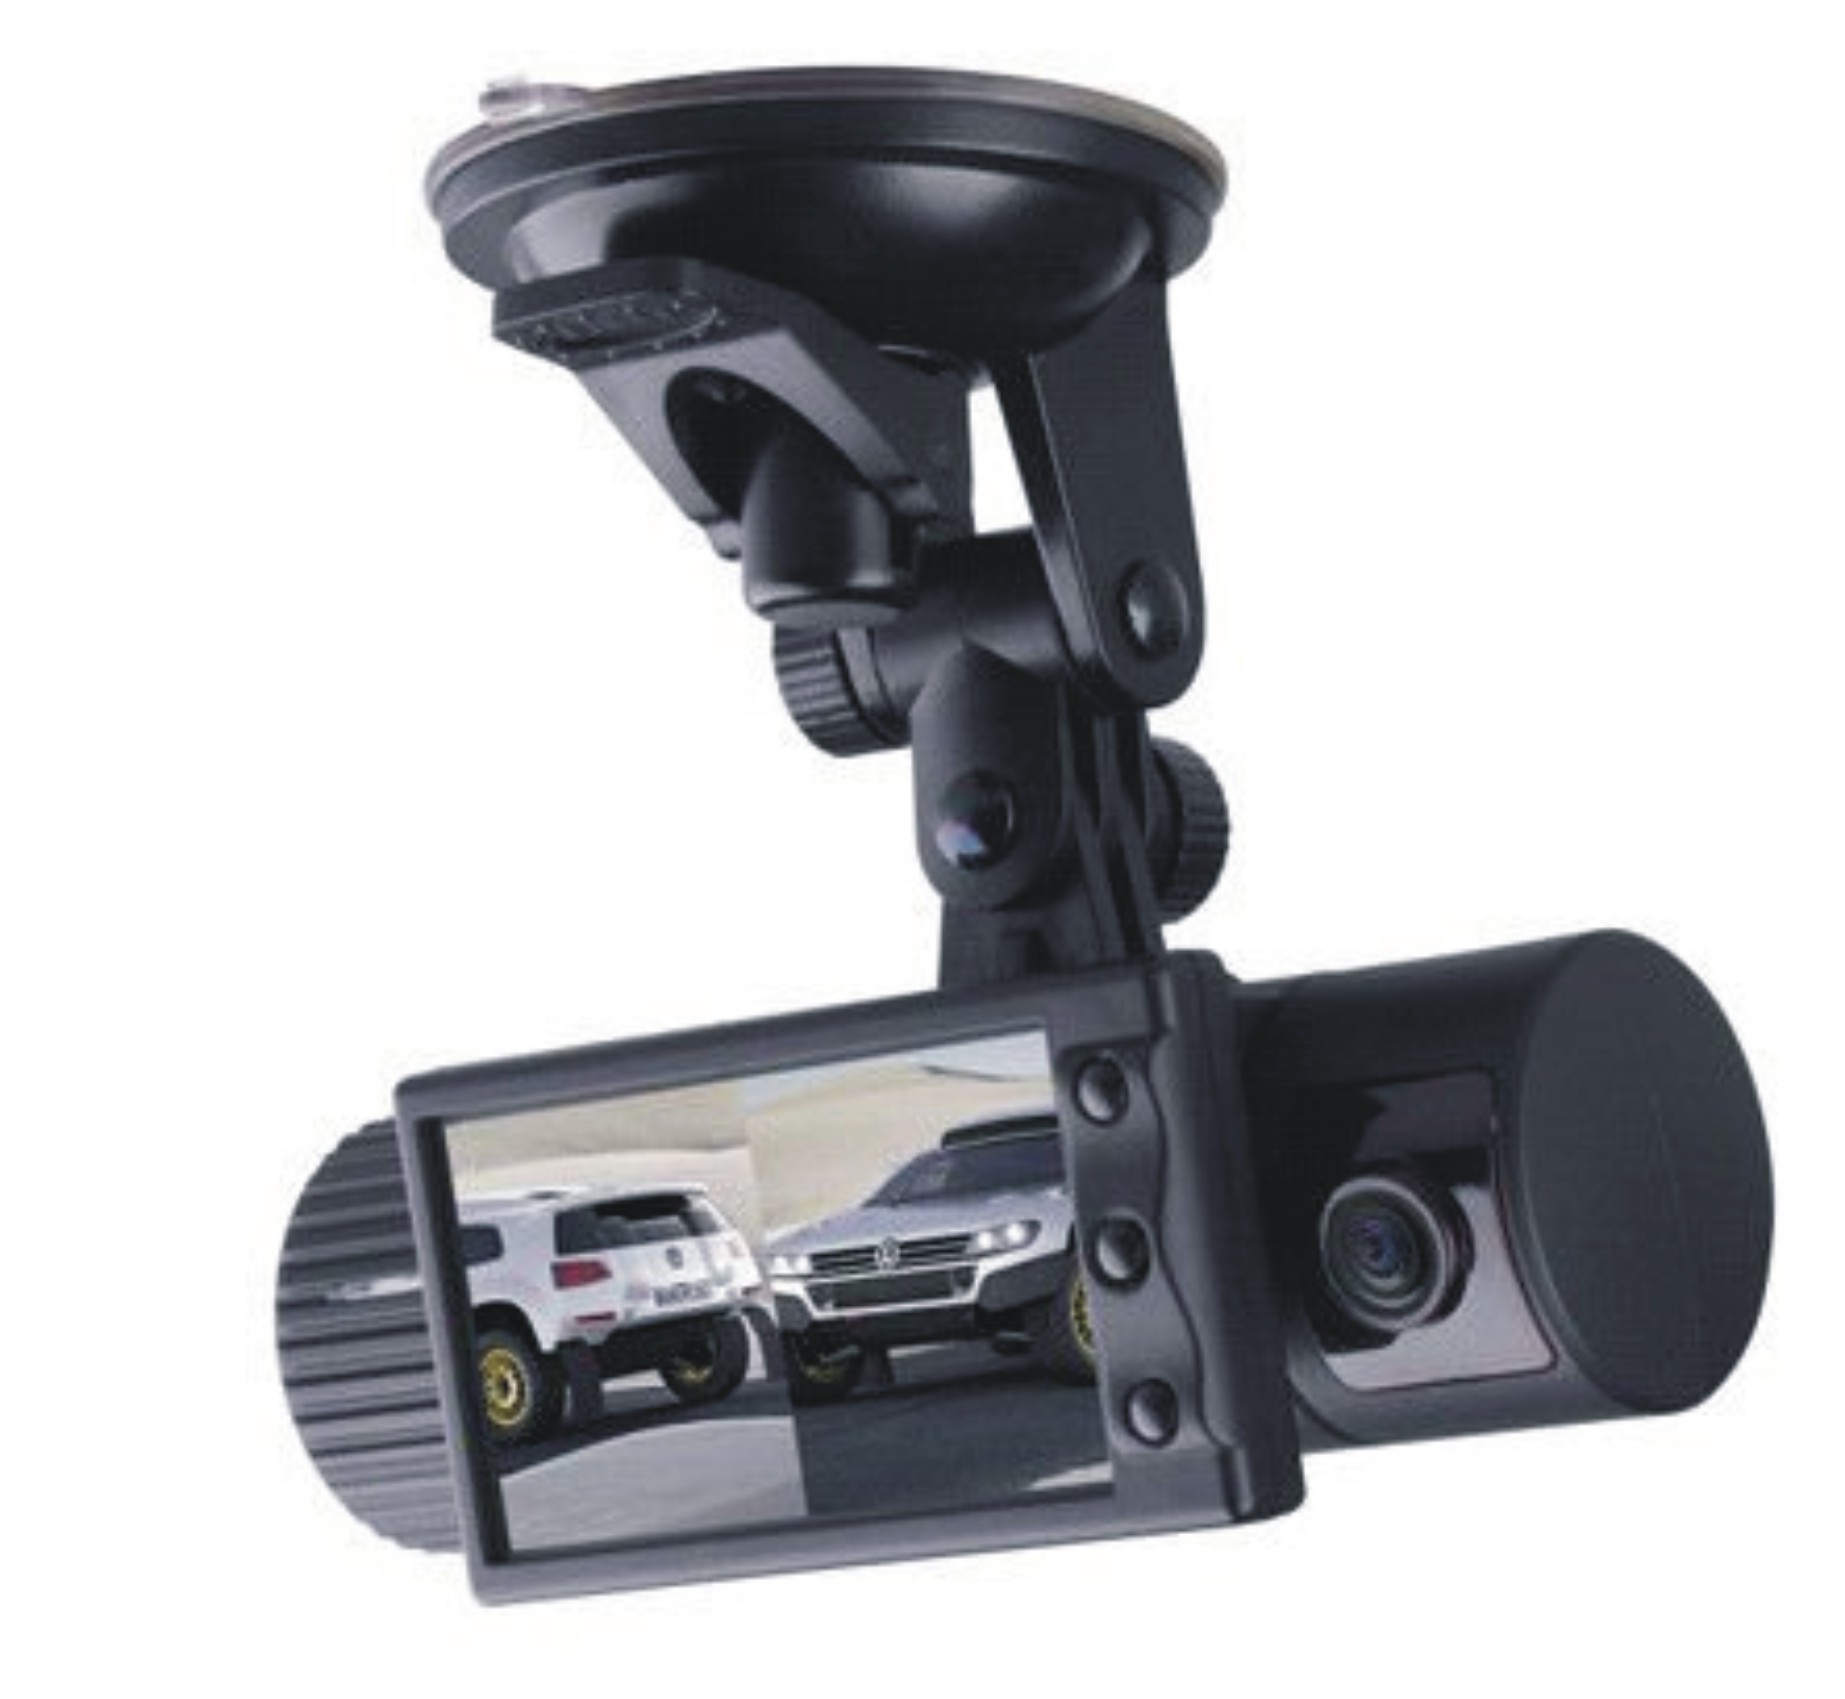 Dual Lens Dashboard Camera In Aizawl